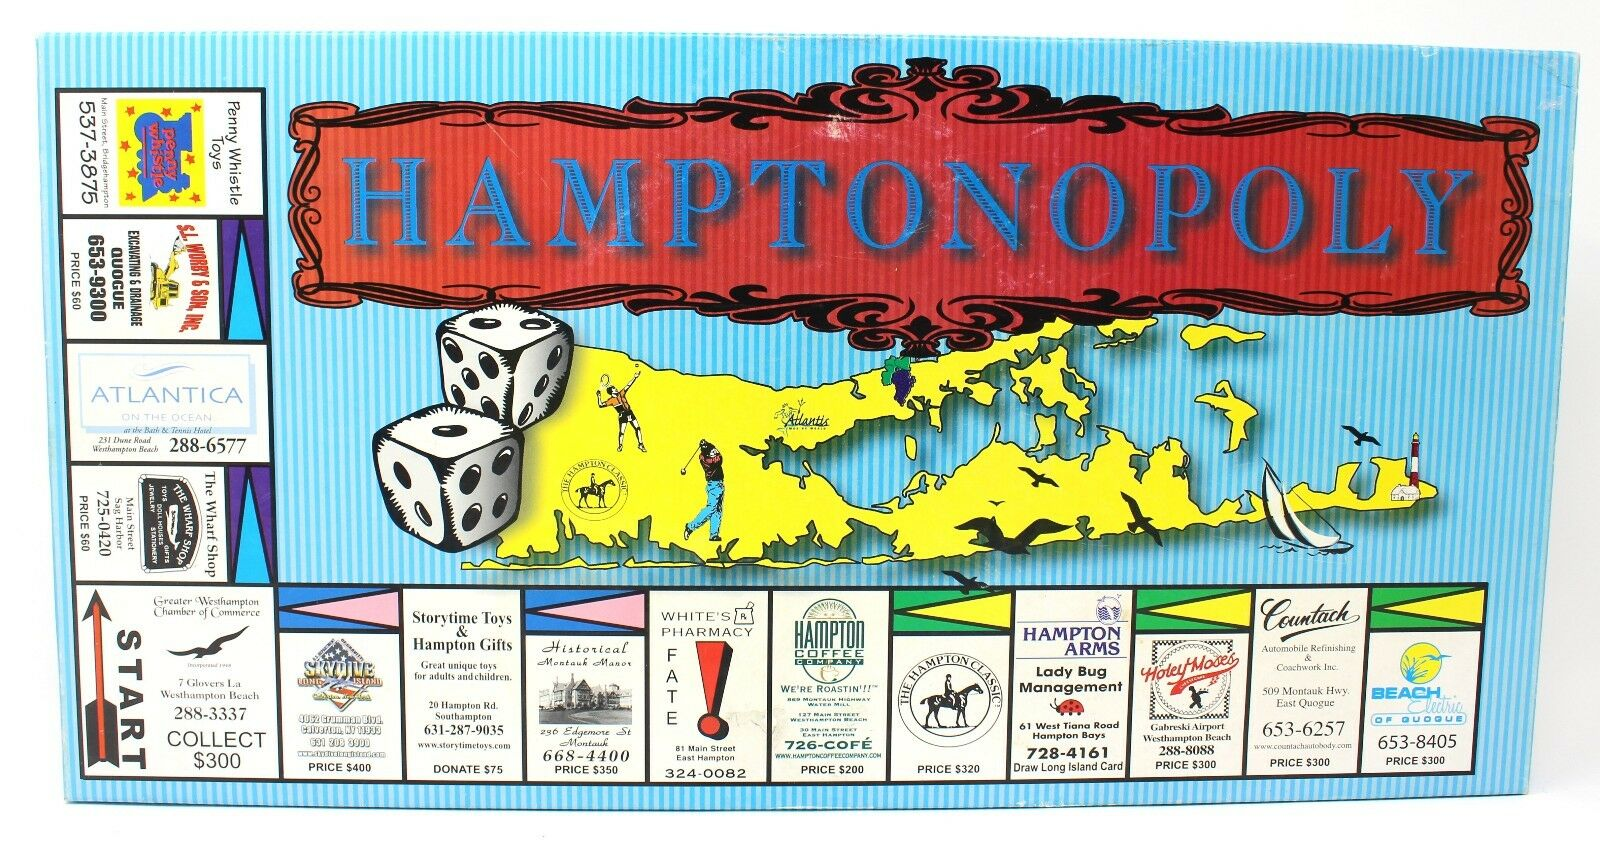 Hamptonopoly Monopoly Style Board Game Complete - The Hamptons, New York, NY